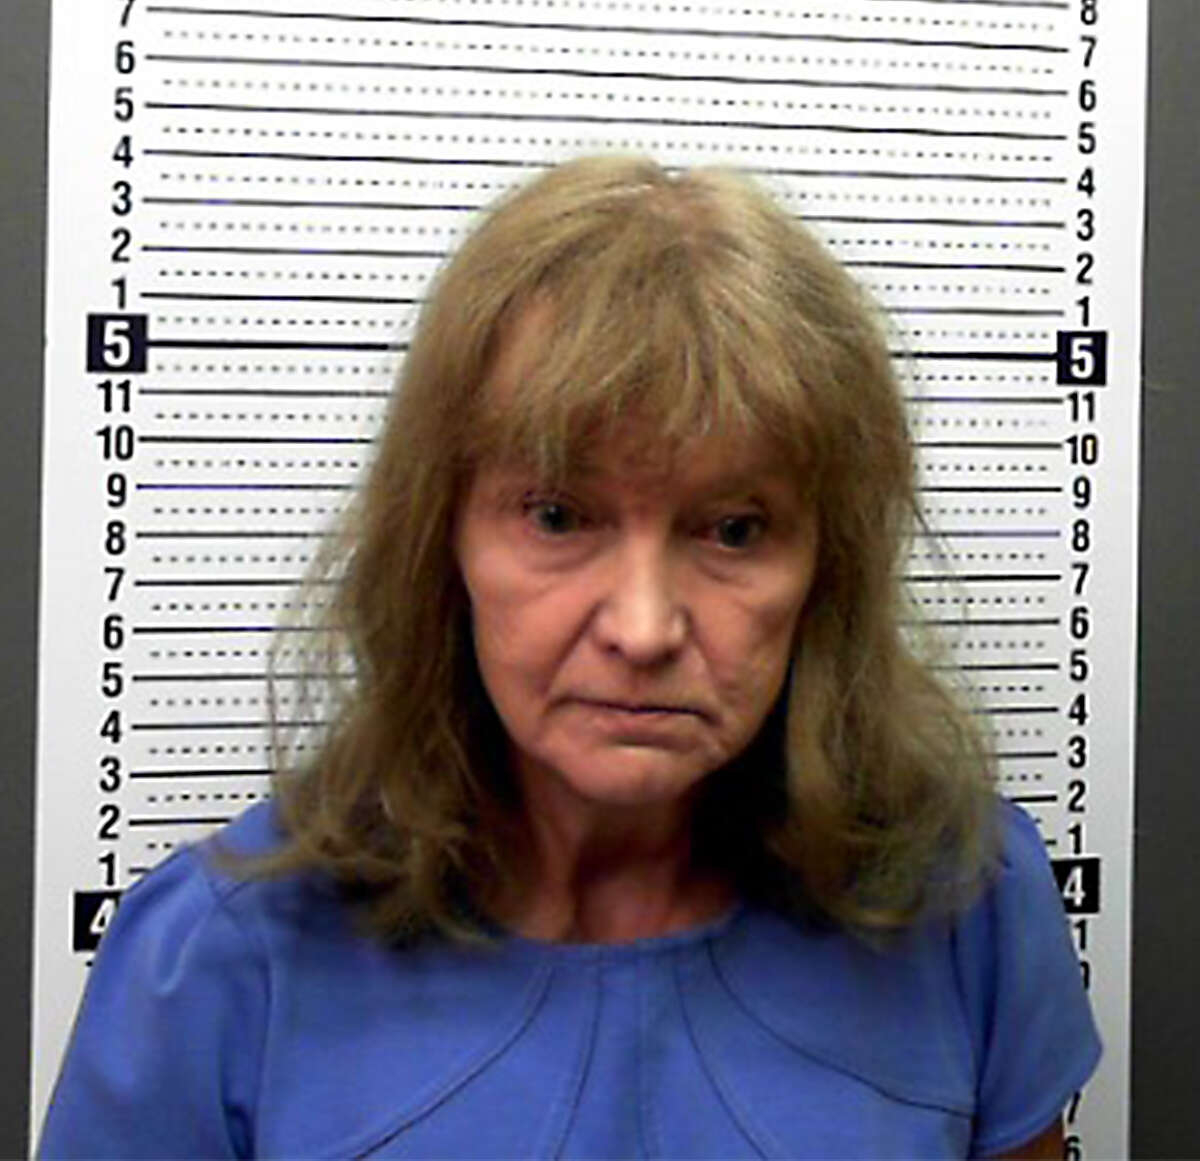 Kathleen Daniel. She is on trial in Boerne on charges of assault.